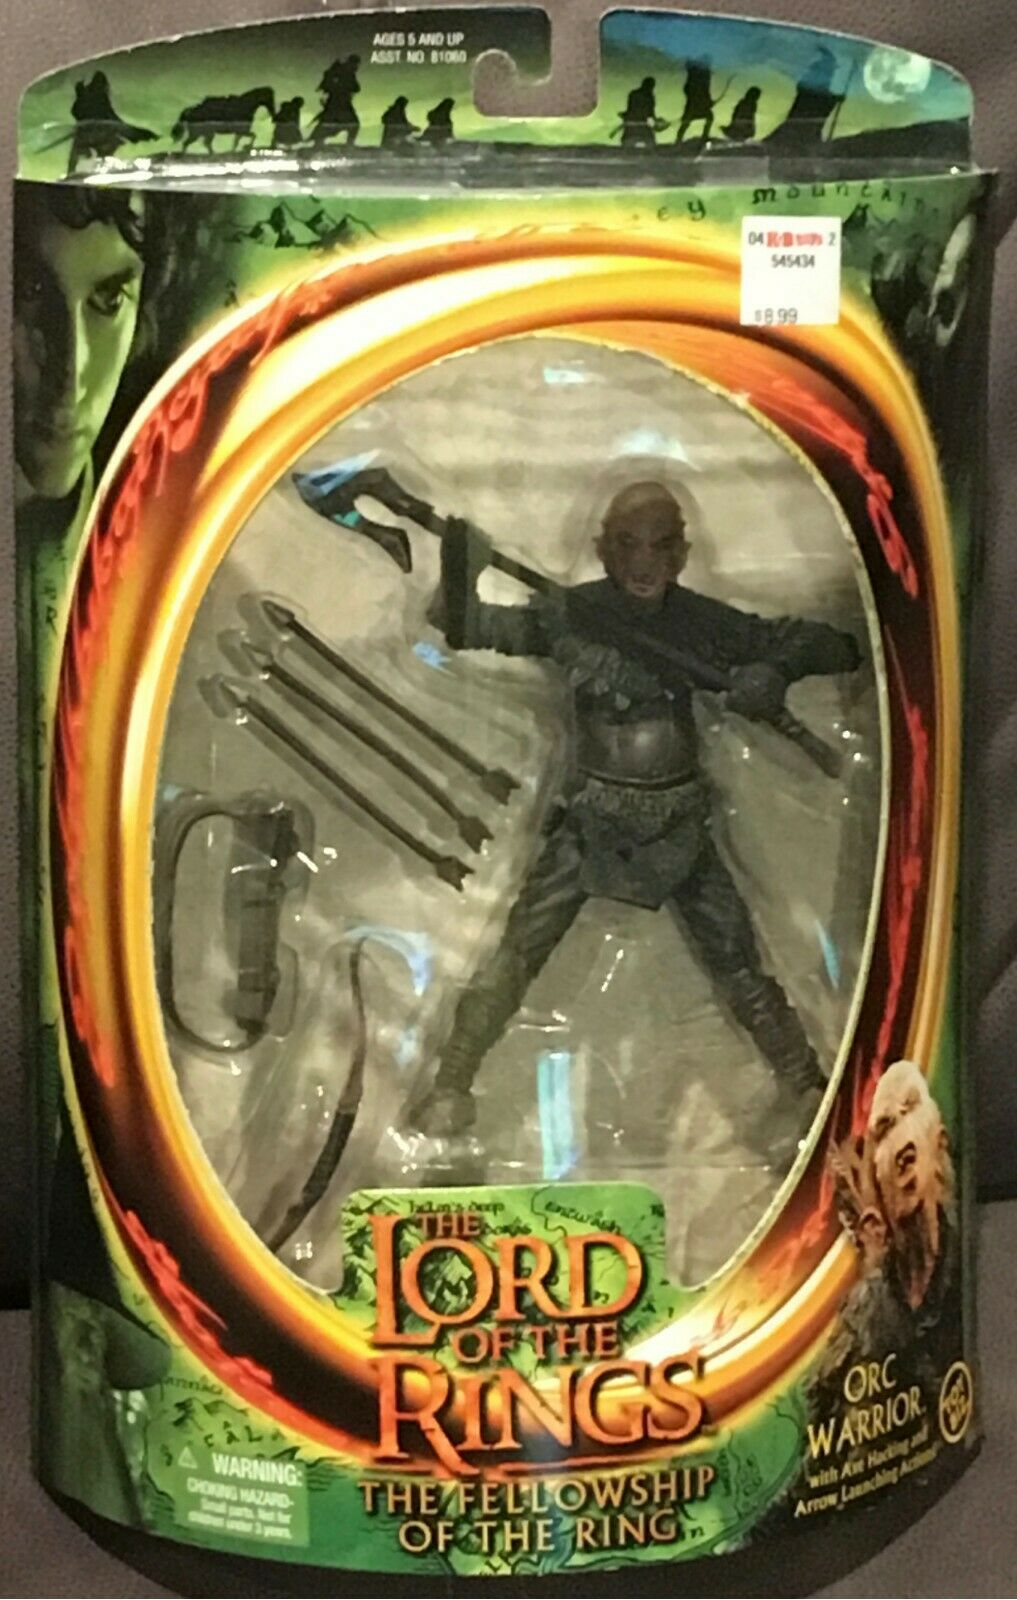 ORC WARRIOR WARRIOR WARRIOR - ToyBiz Lord of the Rings LOTR Fellowship of the Ring w  axe & bow af304c